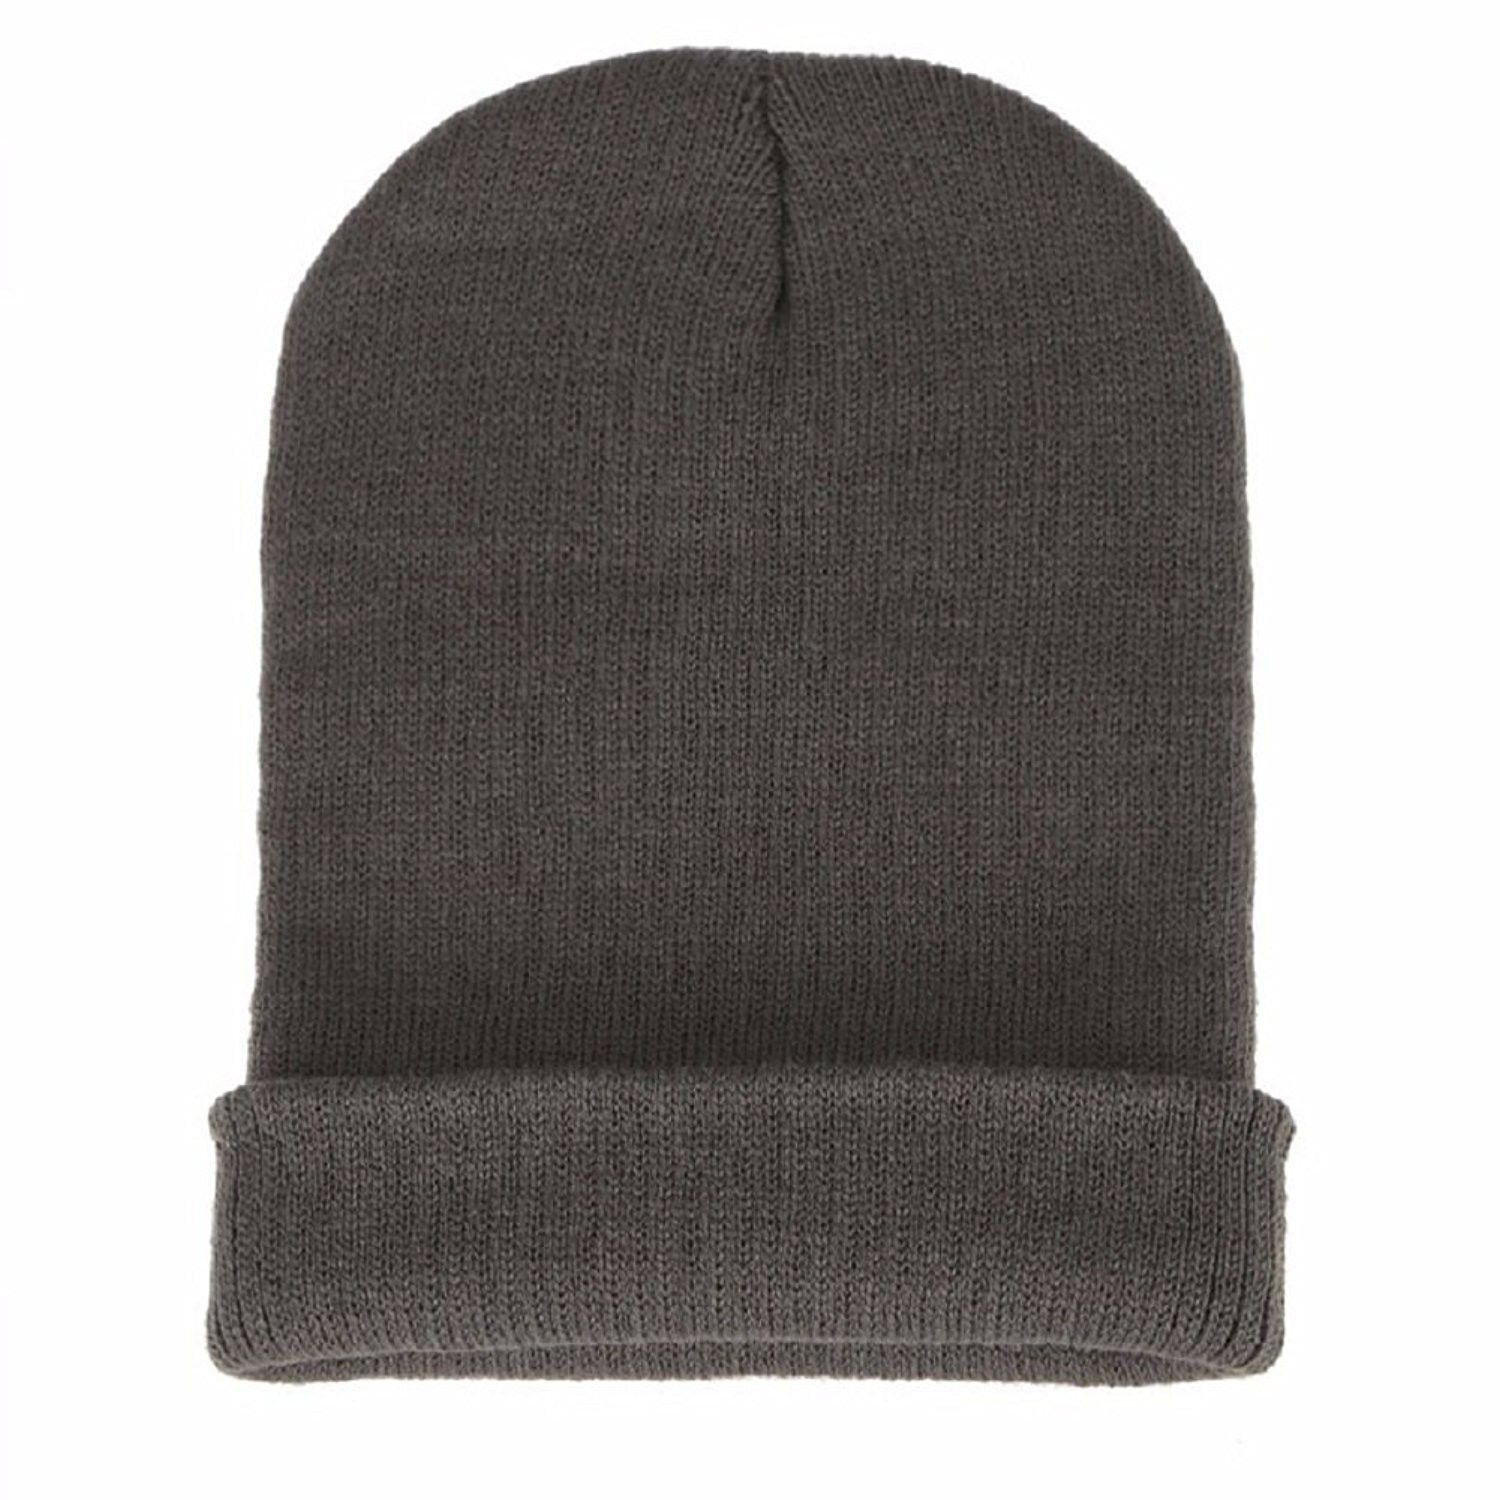 ce48bd201531e Slouchy Beanie Chunky Cable-Trendy Warm Oversized Unisex-Thick Knit Soft  Warm Winter Hat